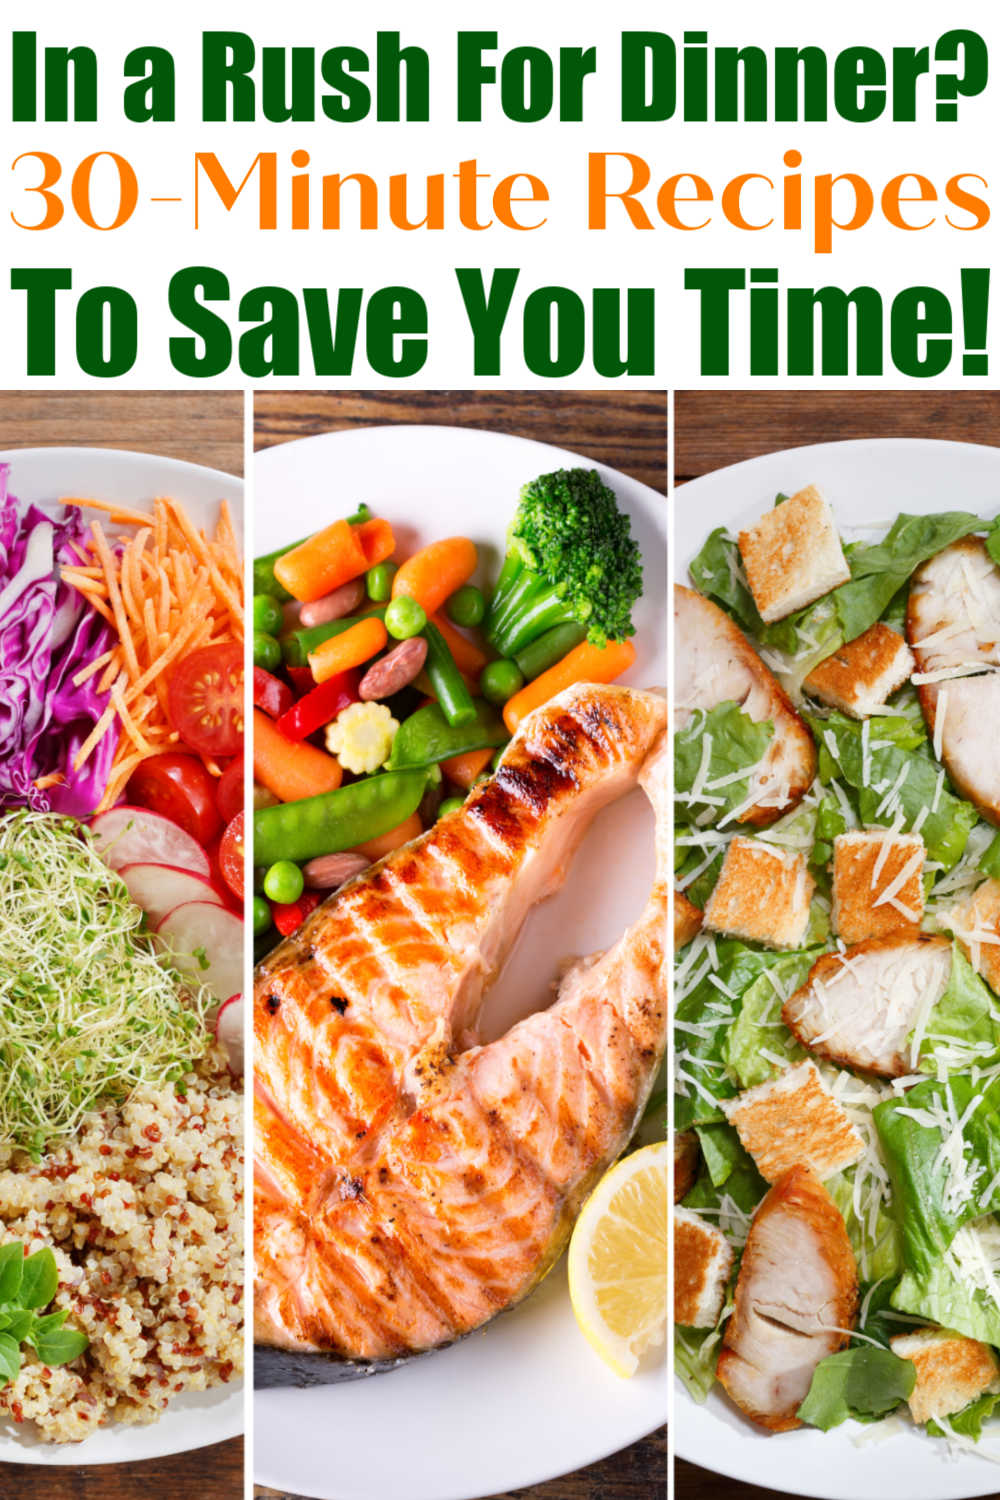 Quick and Easy 30 Minute Dinner Ideas